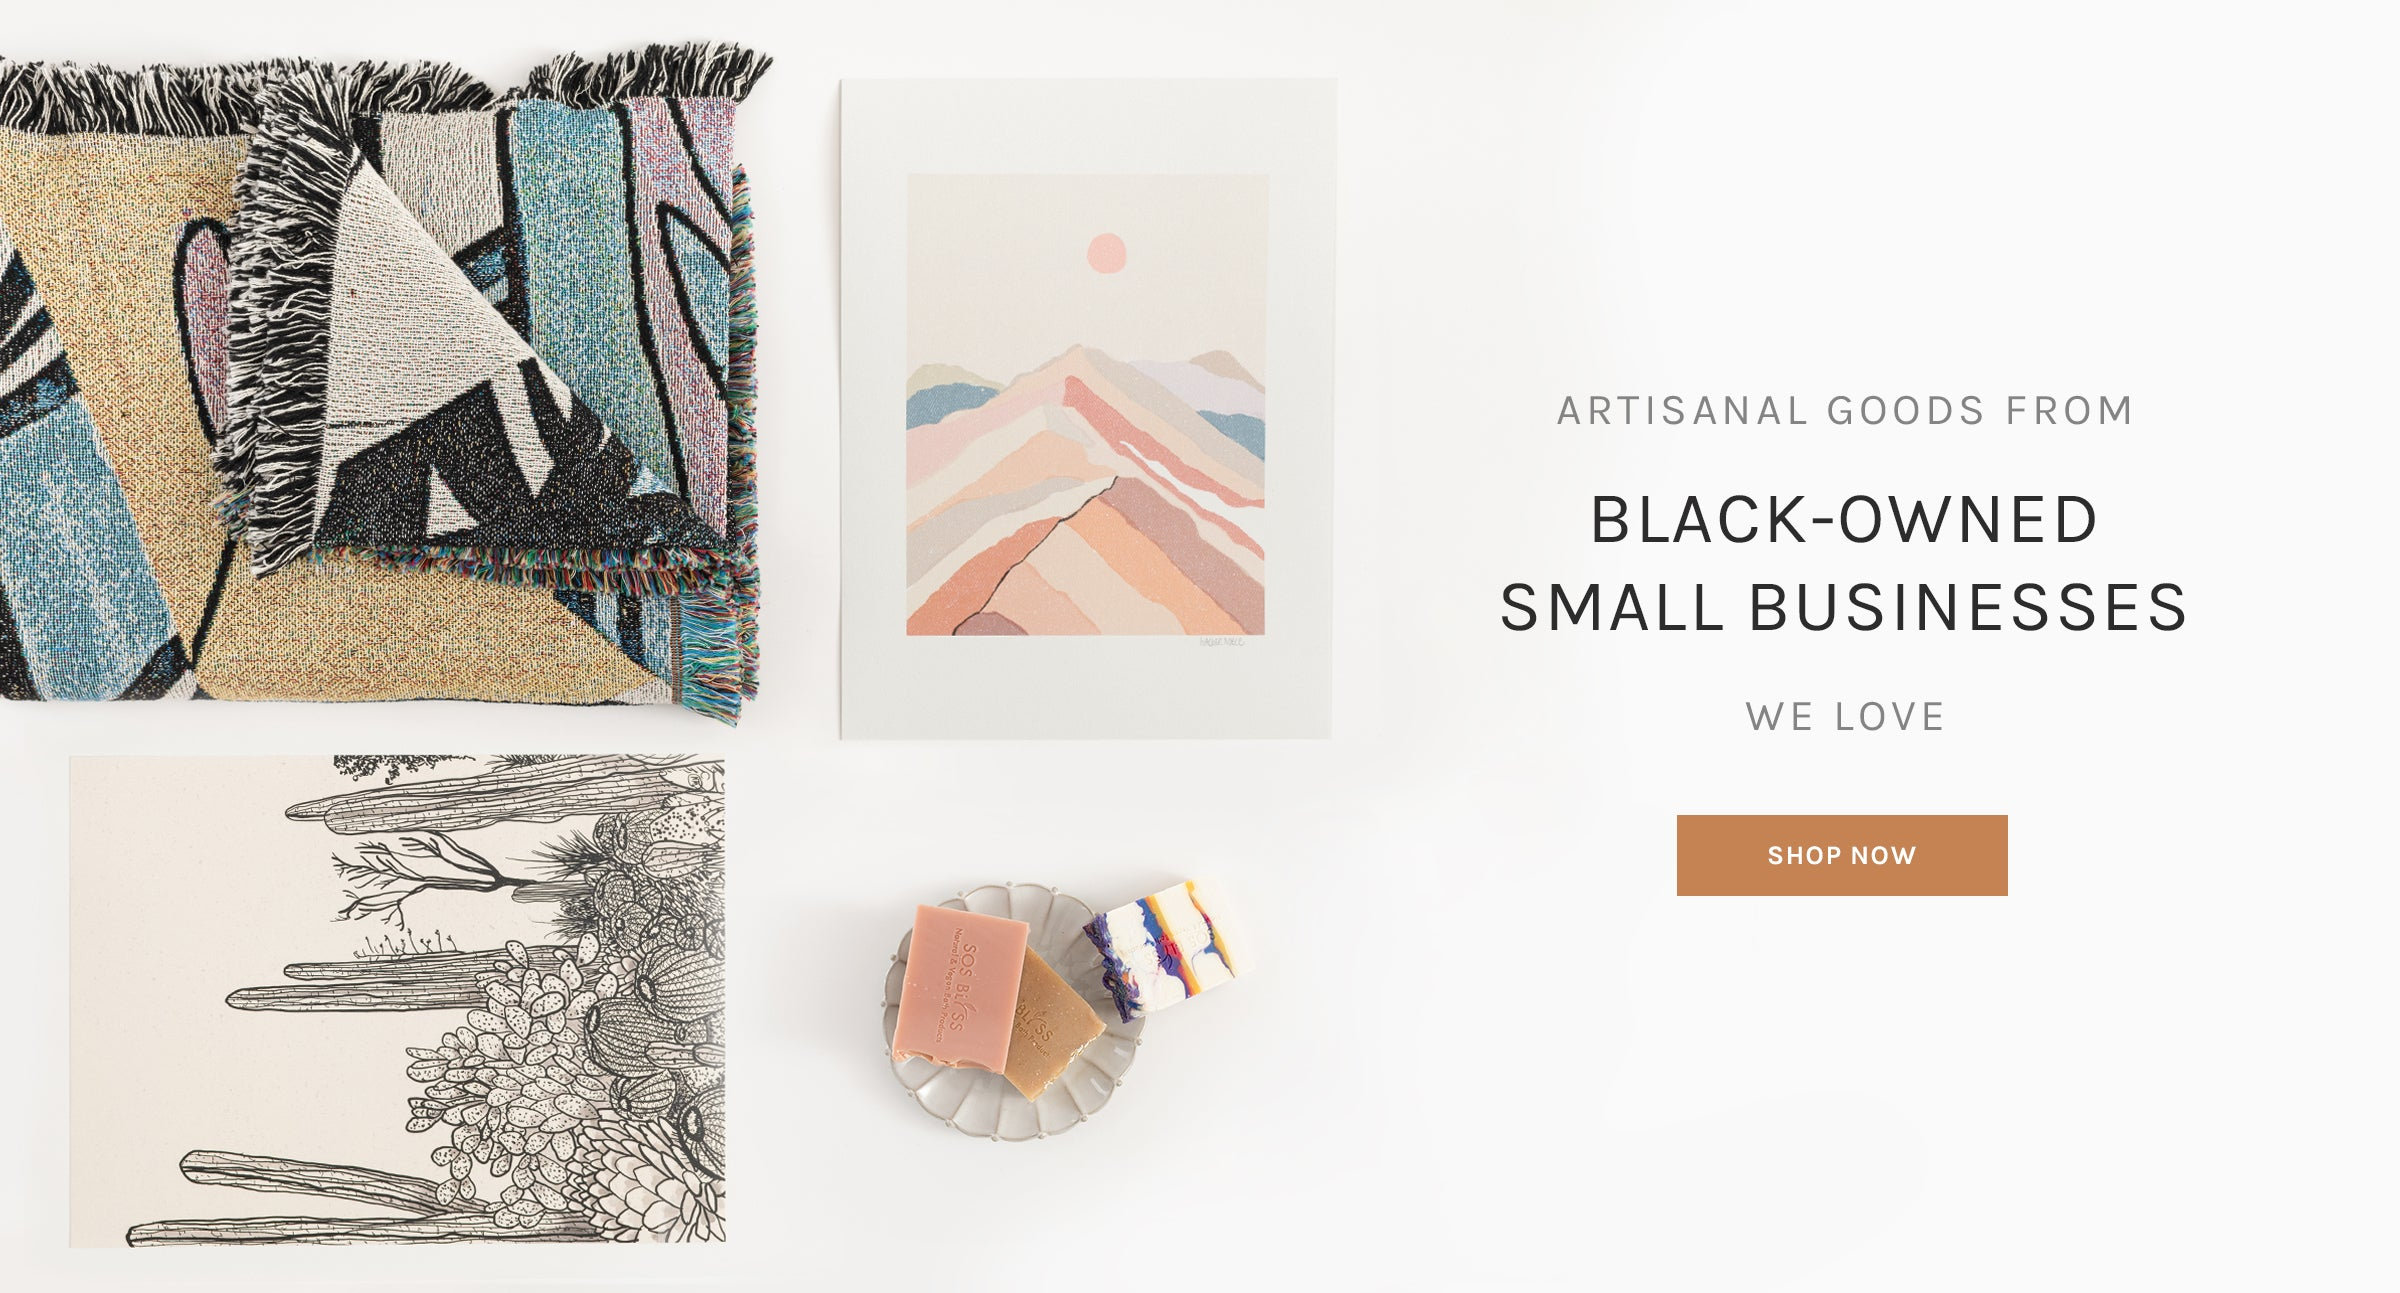 Artisanal Goods from Black-Owned Small Businesses We Love